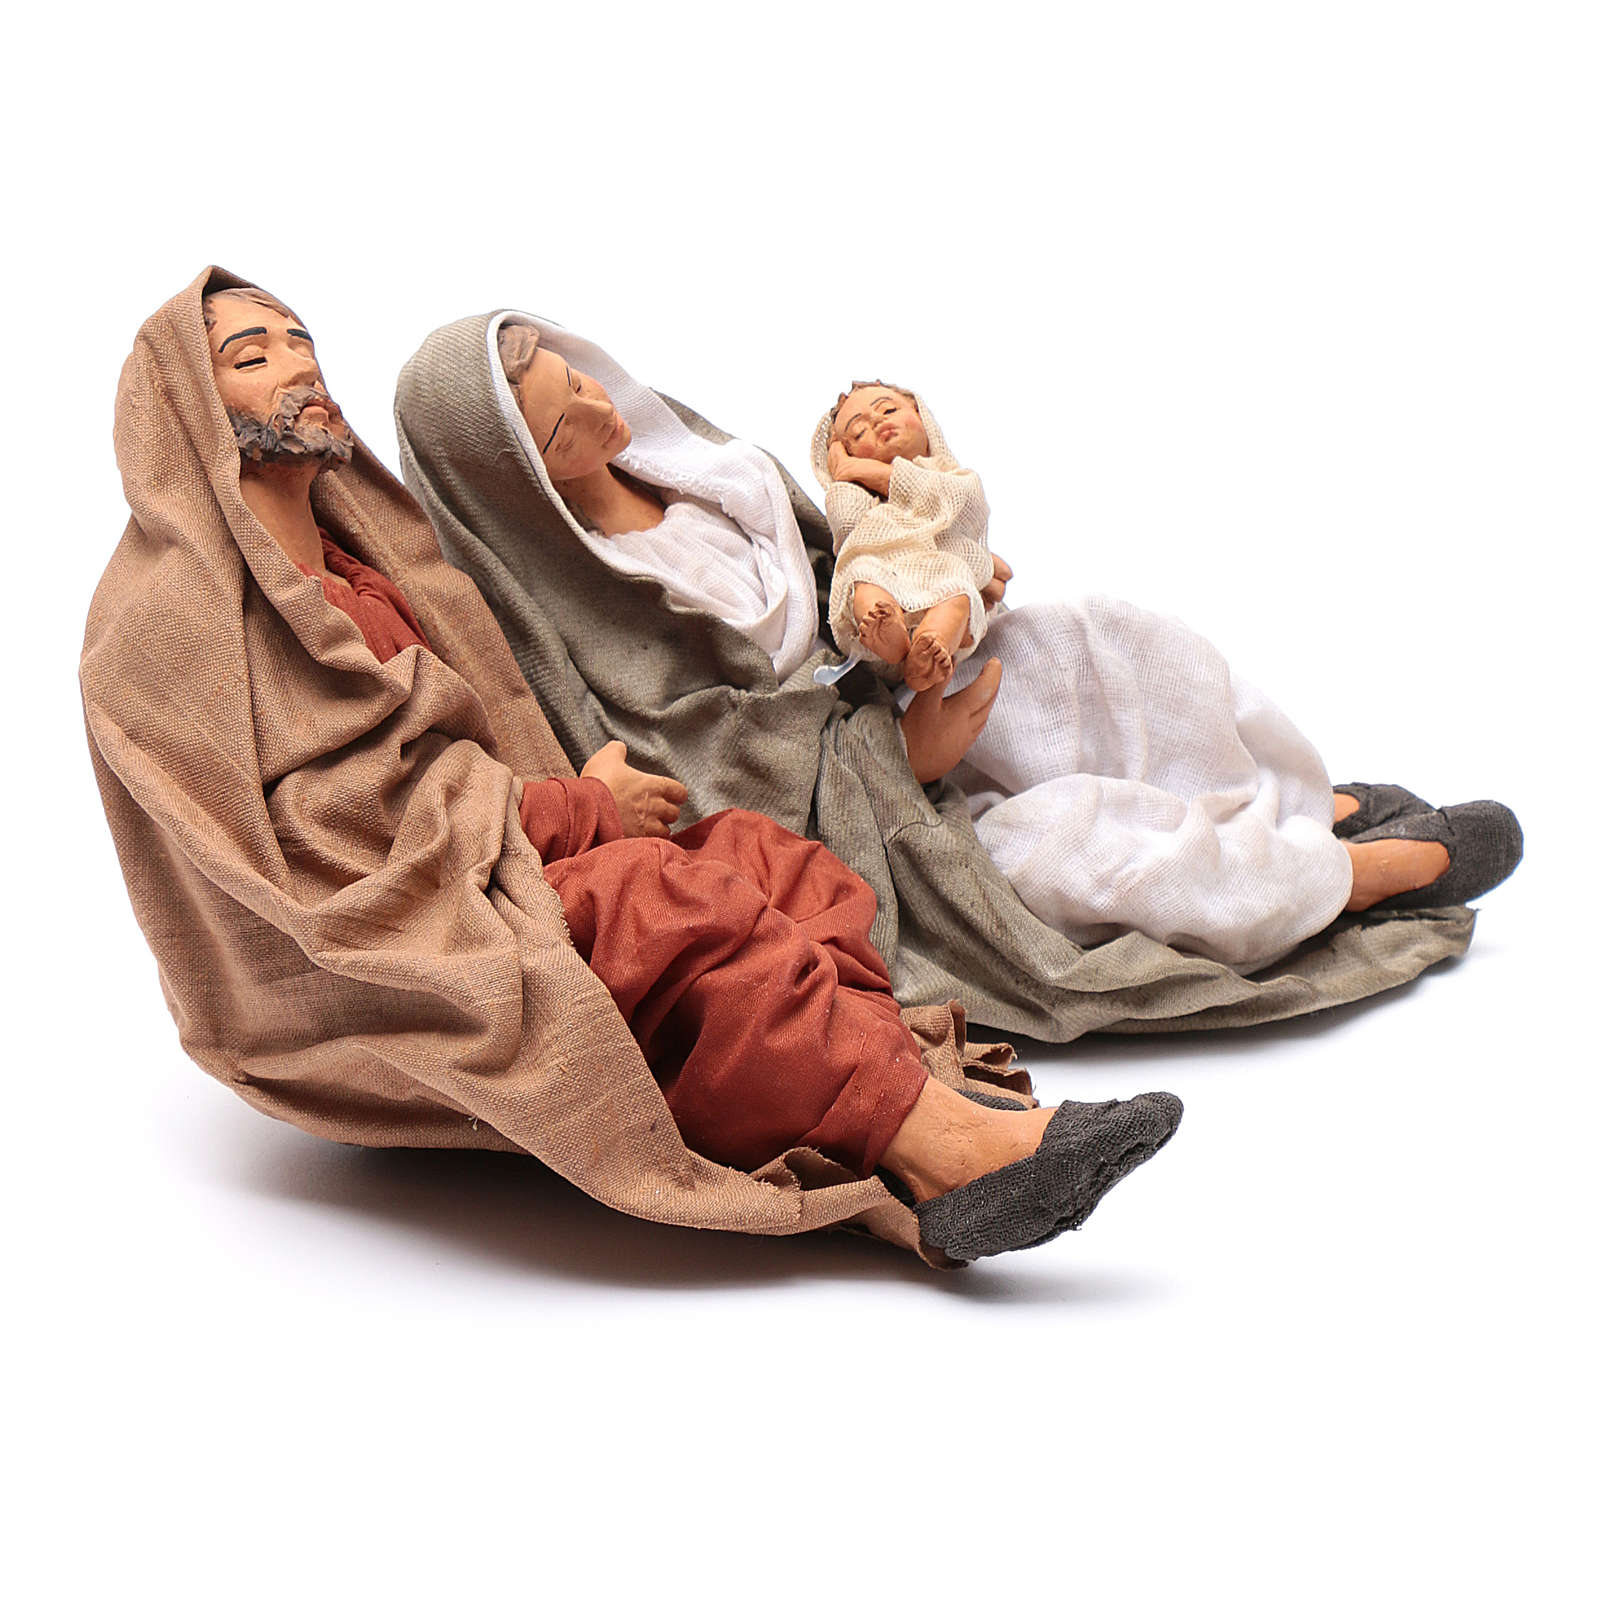 Sleeping Neapolitan Holy Family 30 cm 4